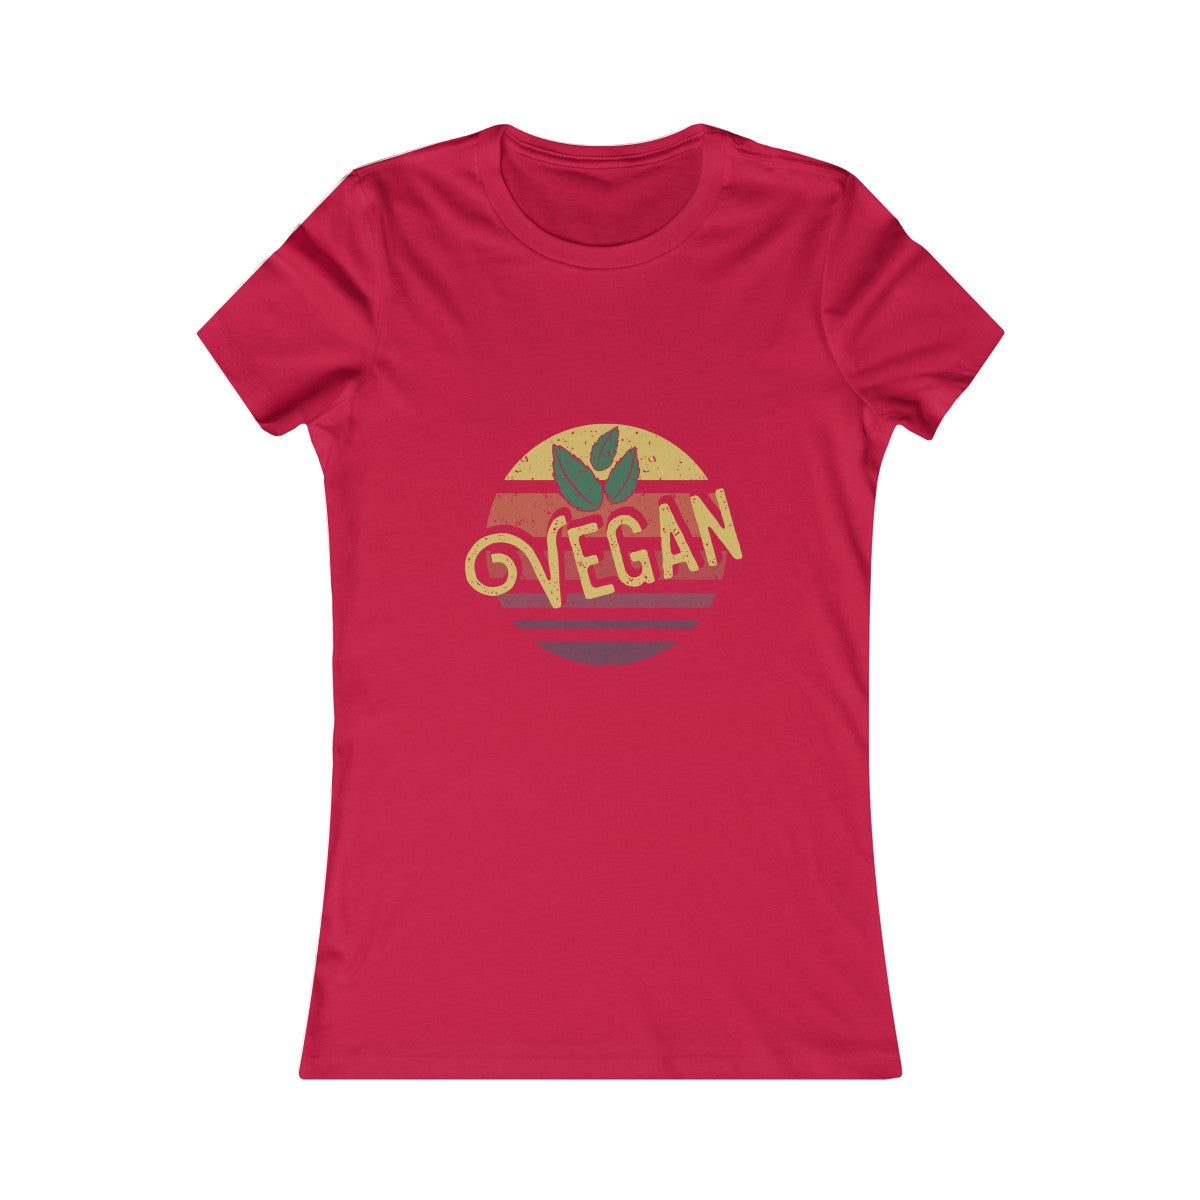 70s Retro Vegan - Women's Slim Fit T-Shirt - My Vegan Menu